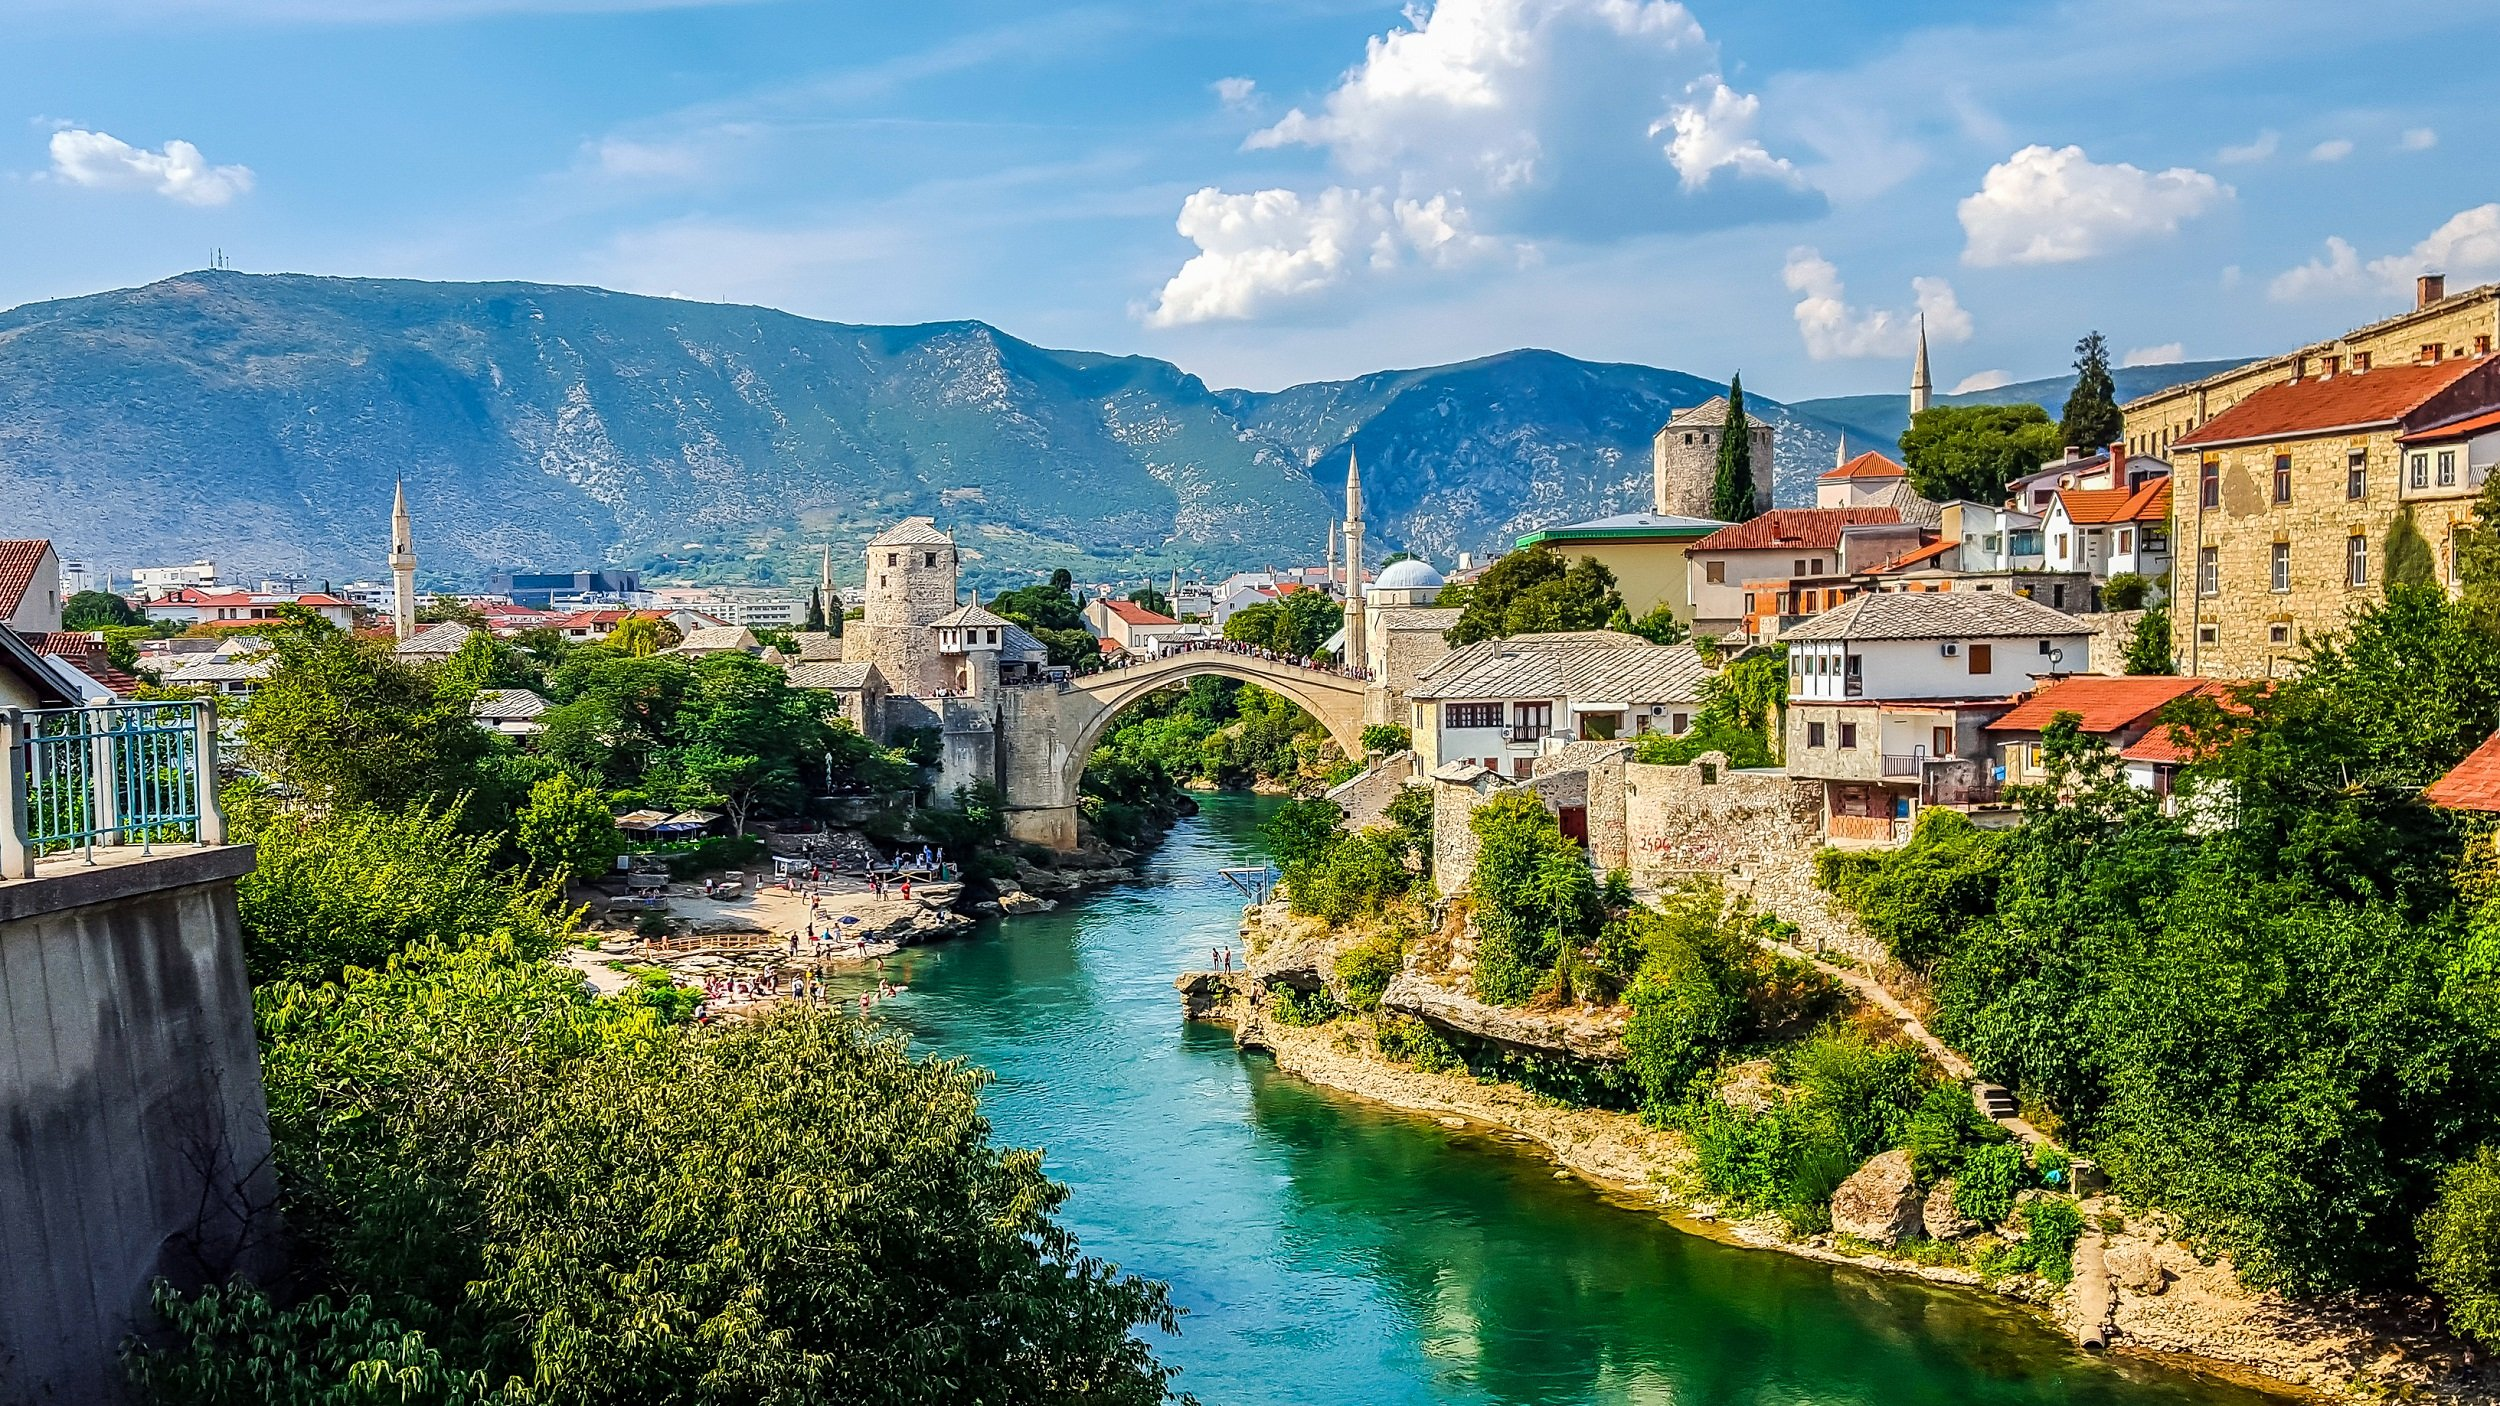 Dubrovnik, Mostar & Kravice 5 Day Tour Package